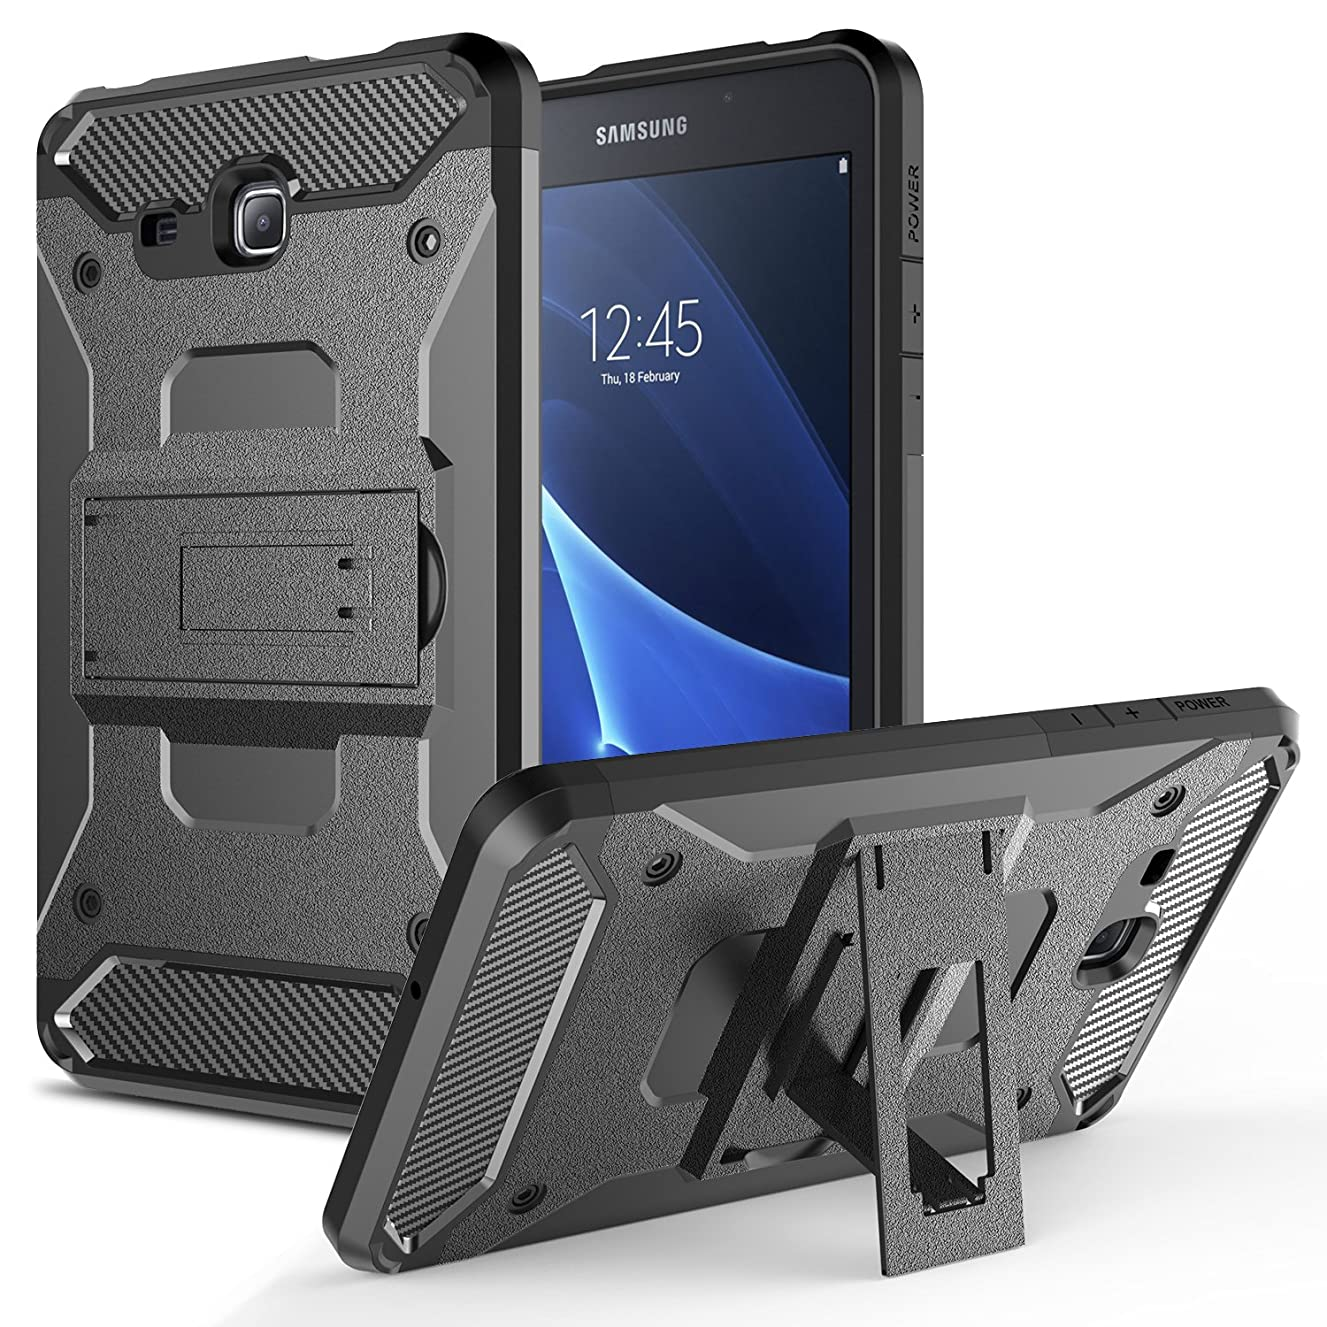 Galaxy Tab A 7.0 Case, Hasting [Heavy Duty] [Shockproof] Warrior Armor Triple Layer Protective Case Cover with Kickstand for Samsung Galaxy Tab A 7.0